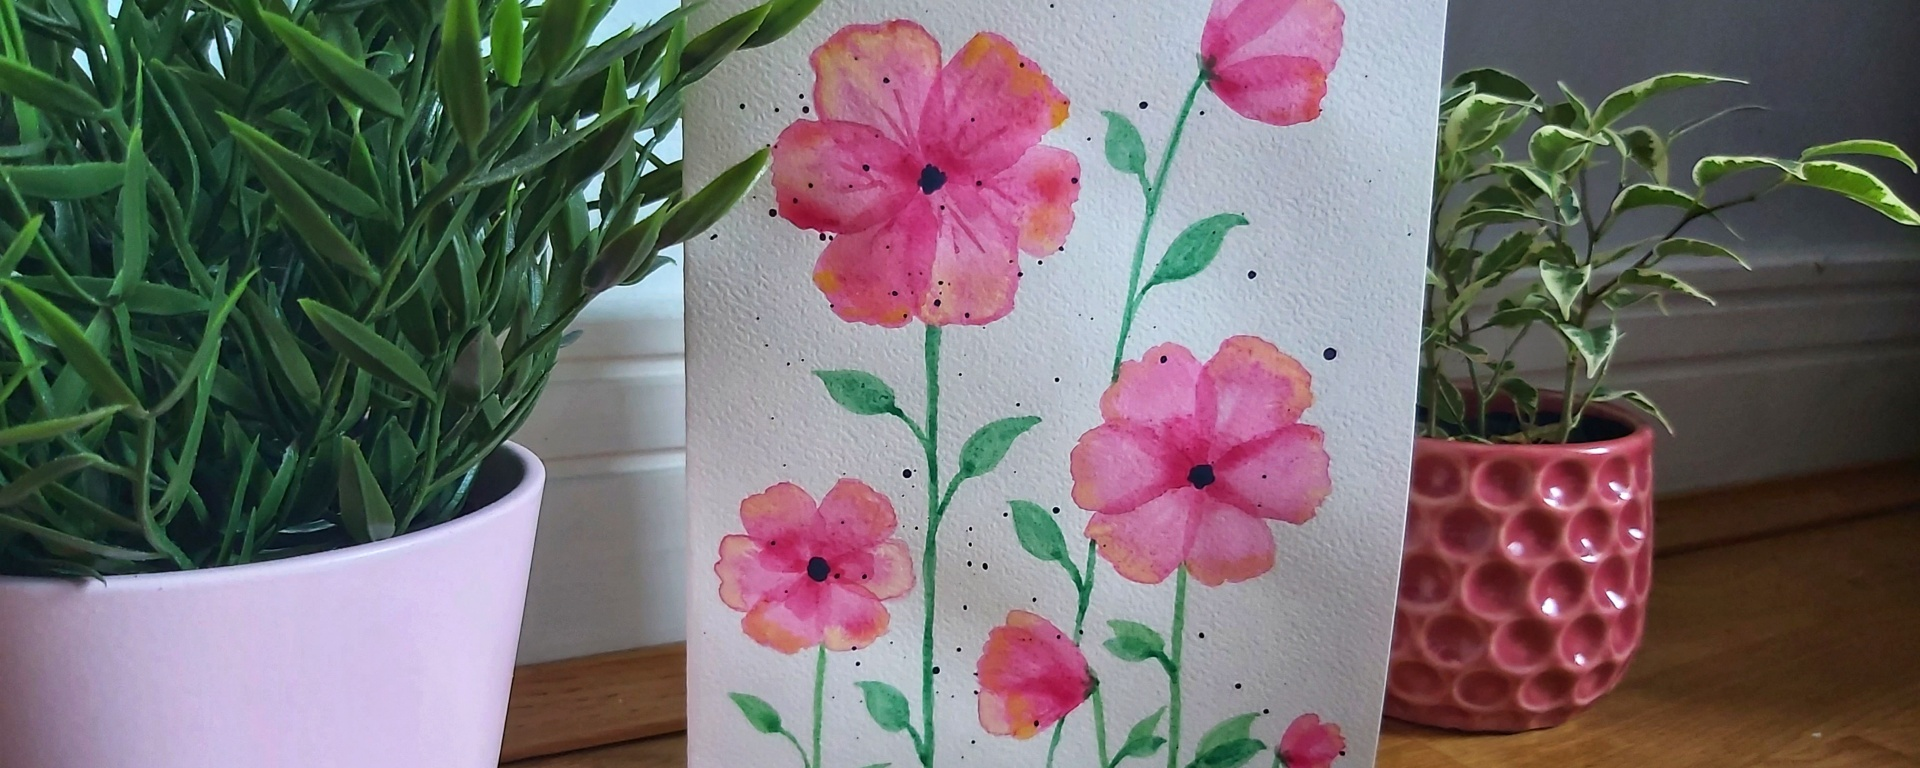 Completed pink watercolour poppies card between two flower pots